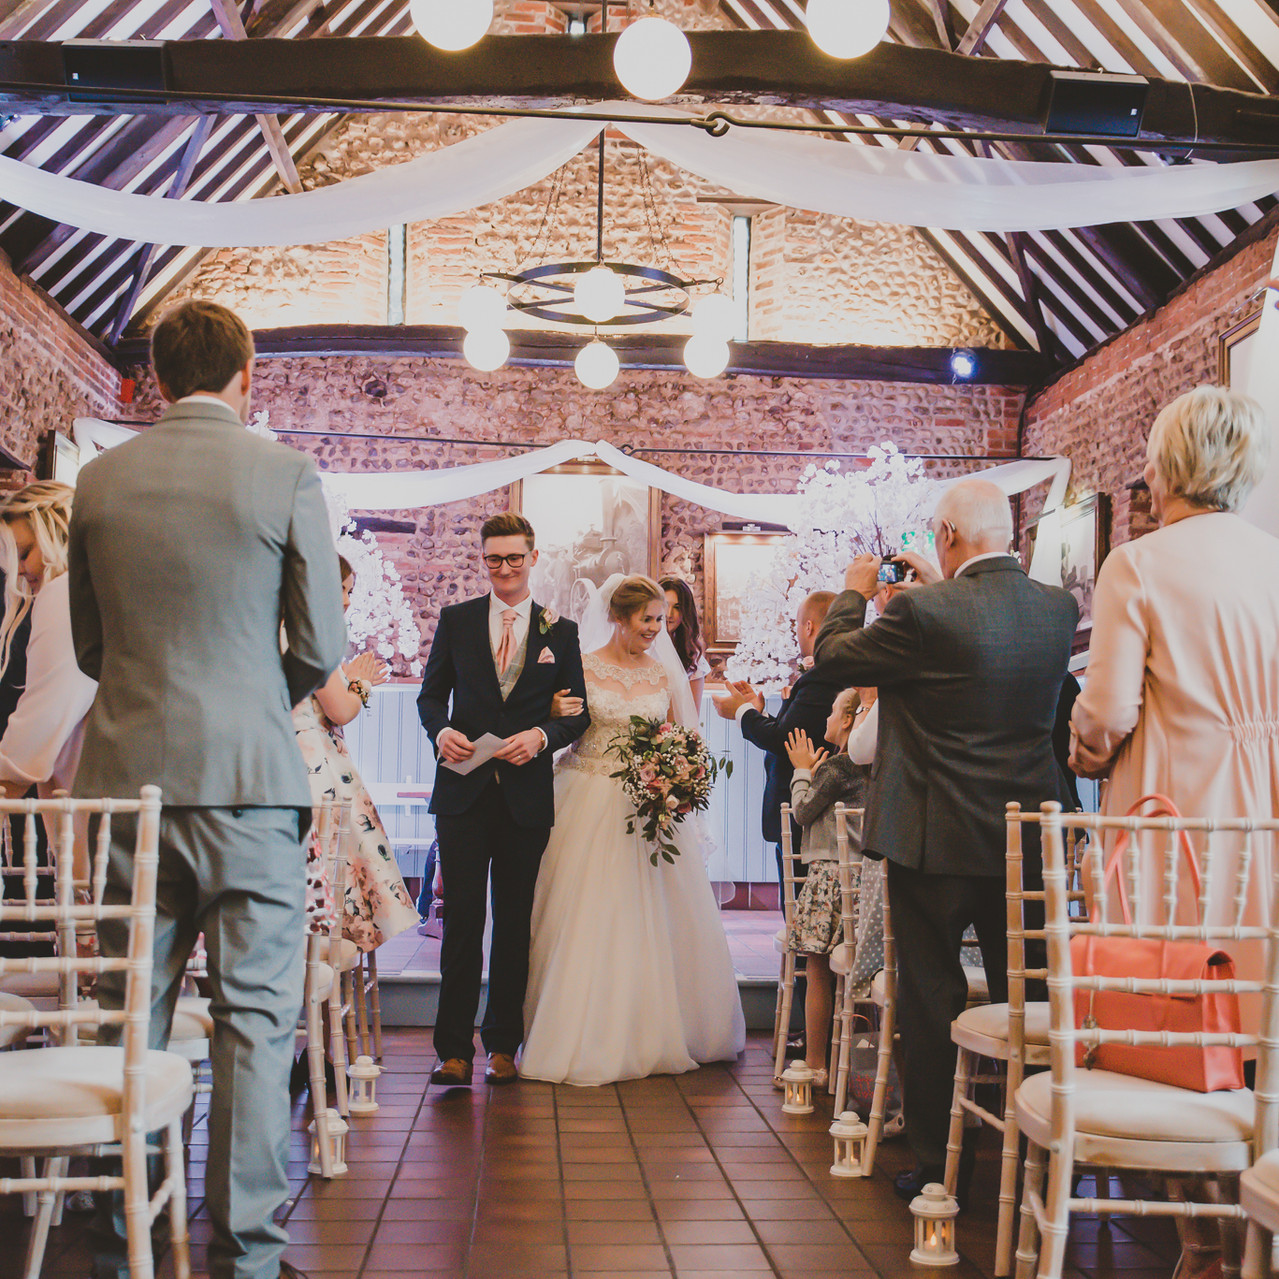 Fay Wedding - Thursford Collection at the Garden Pavilion, Norfolk. Walking down the aisle